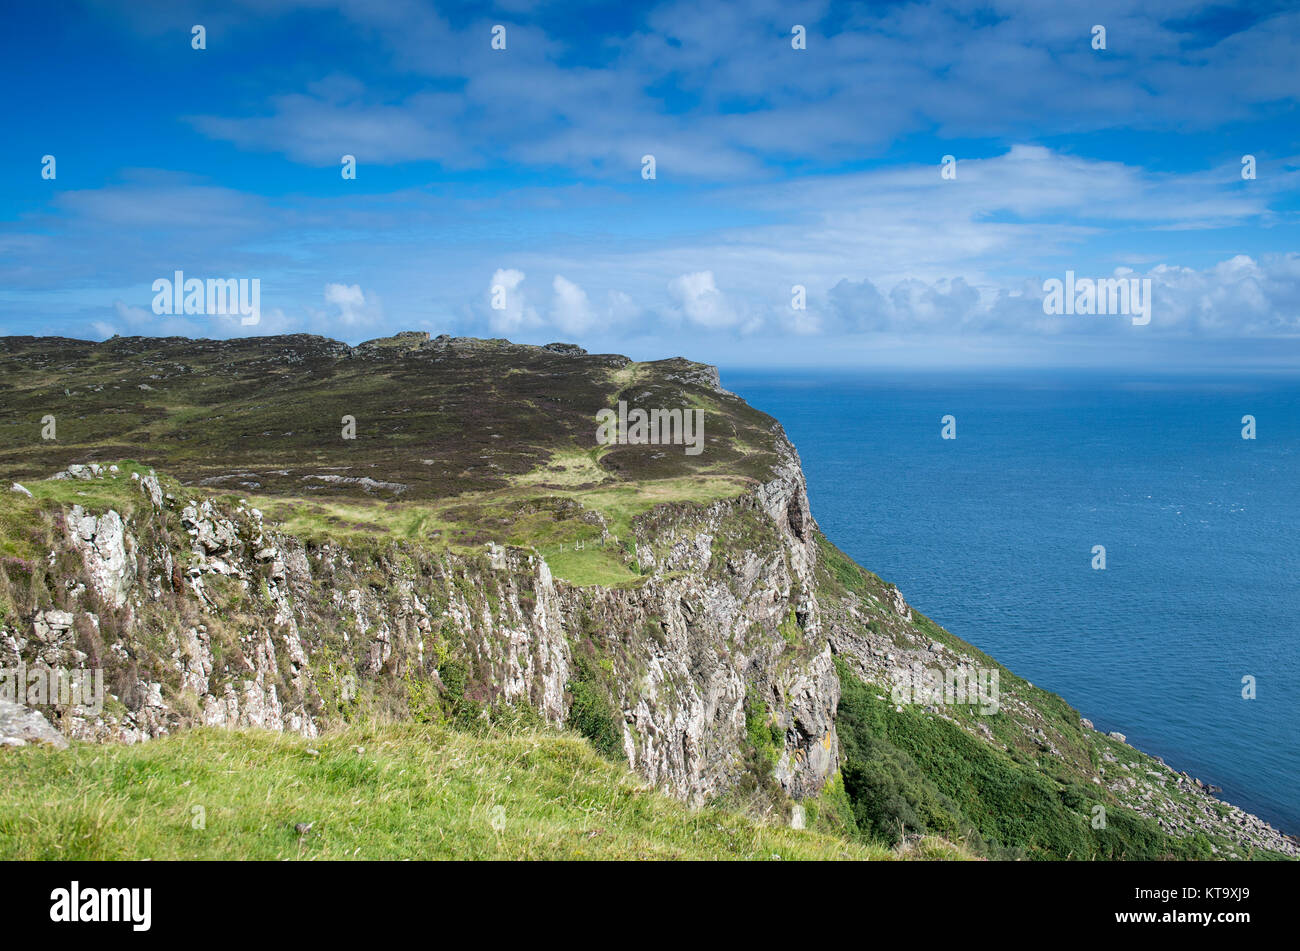 View from the top of Fair Head in County Antrim, Northern Ireland - Stock Image